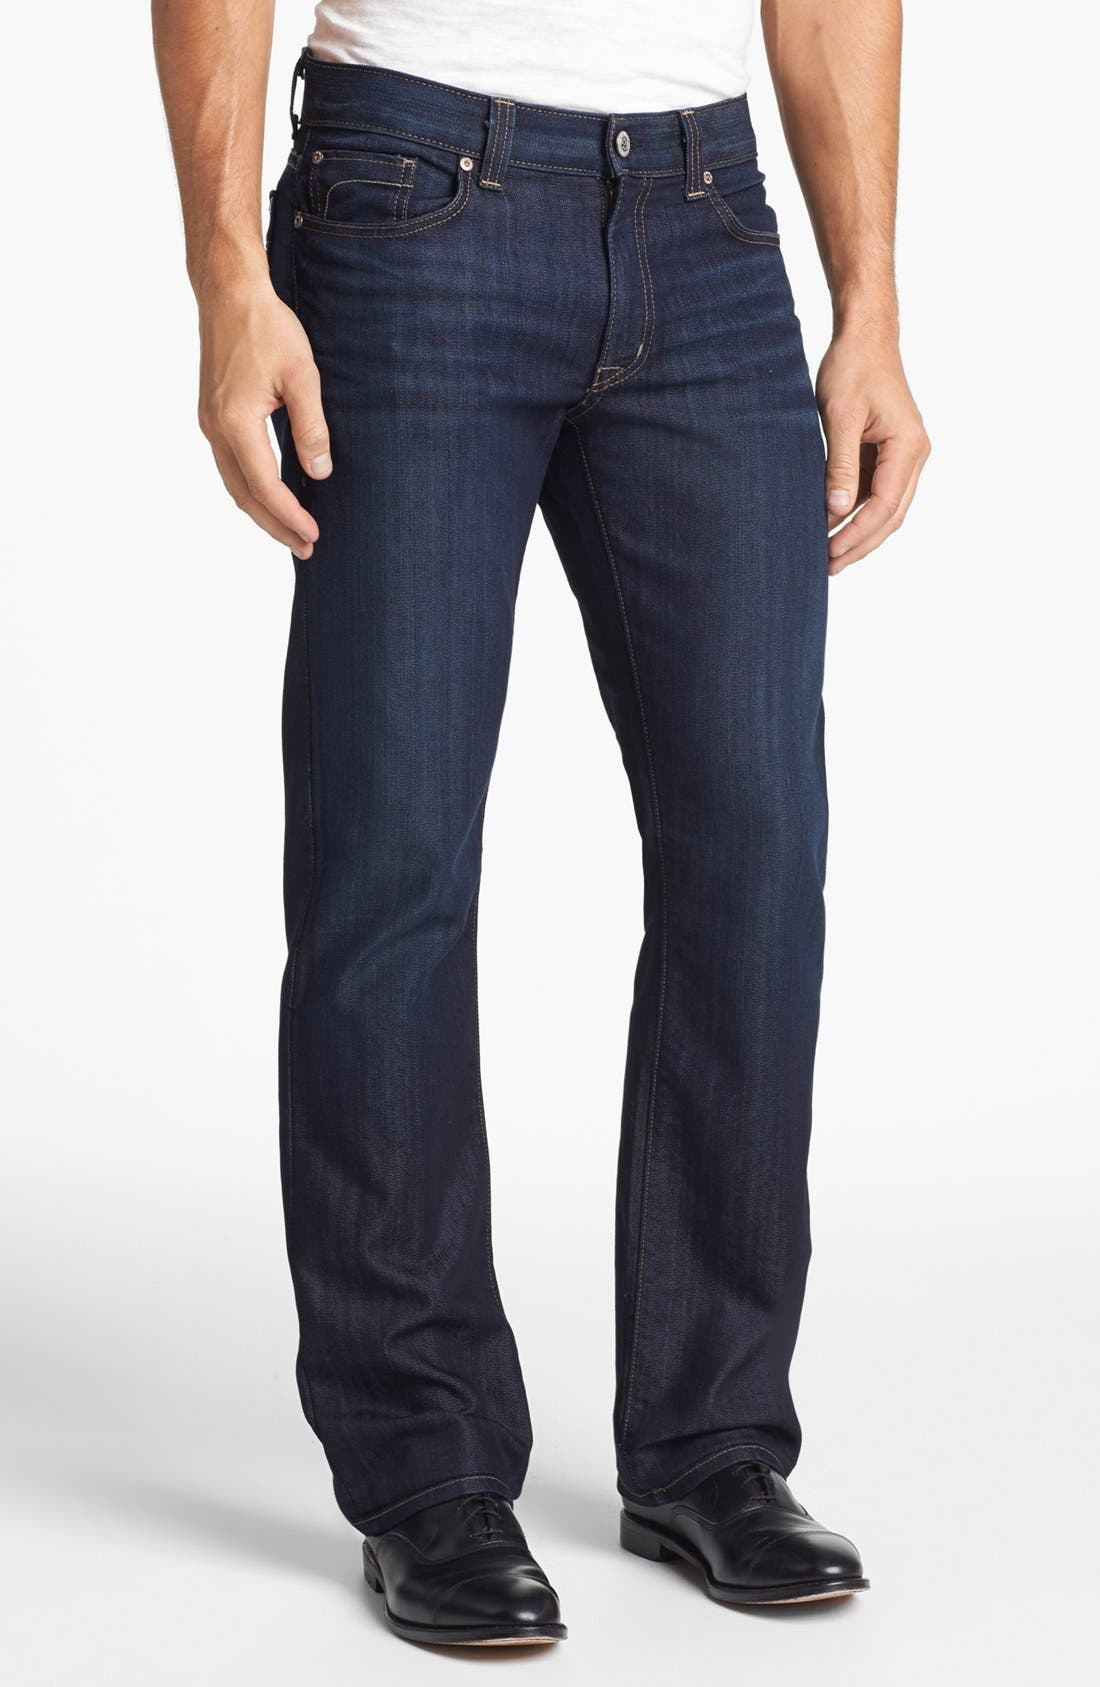 Main Image - Fidelity Denim 50-11 Relaxed Fit Jeans (Calvary)